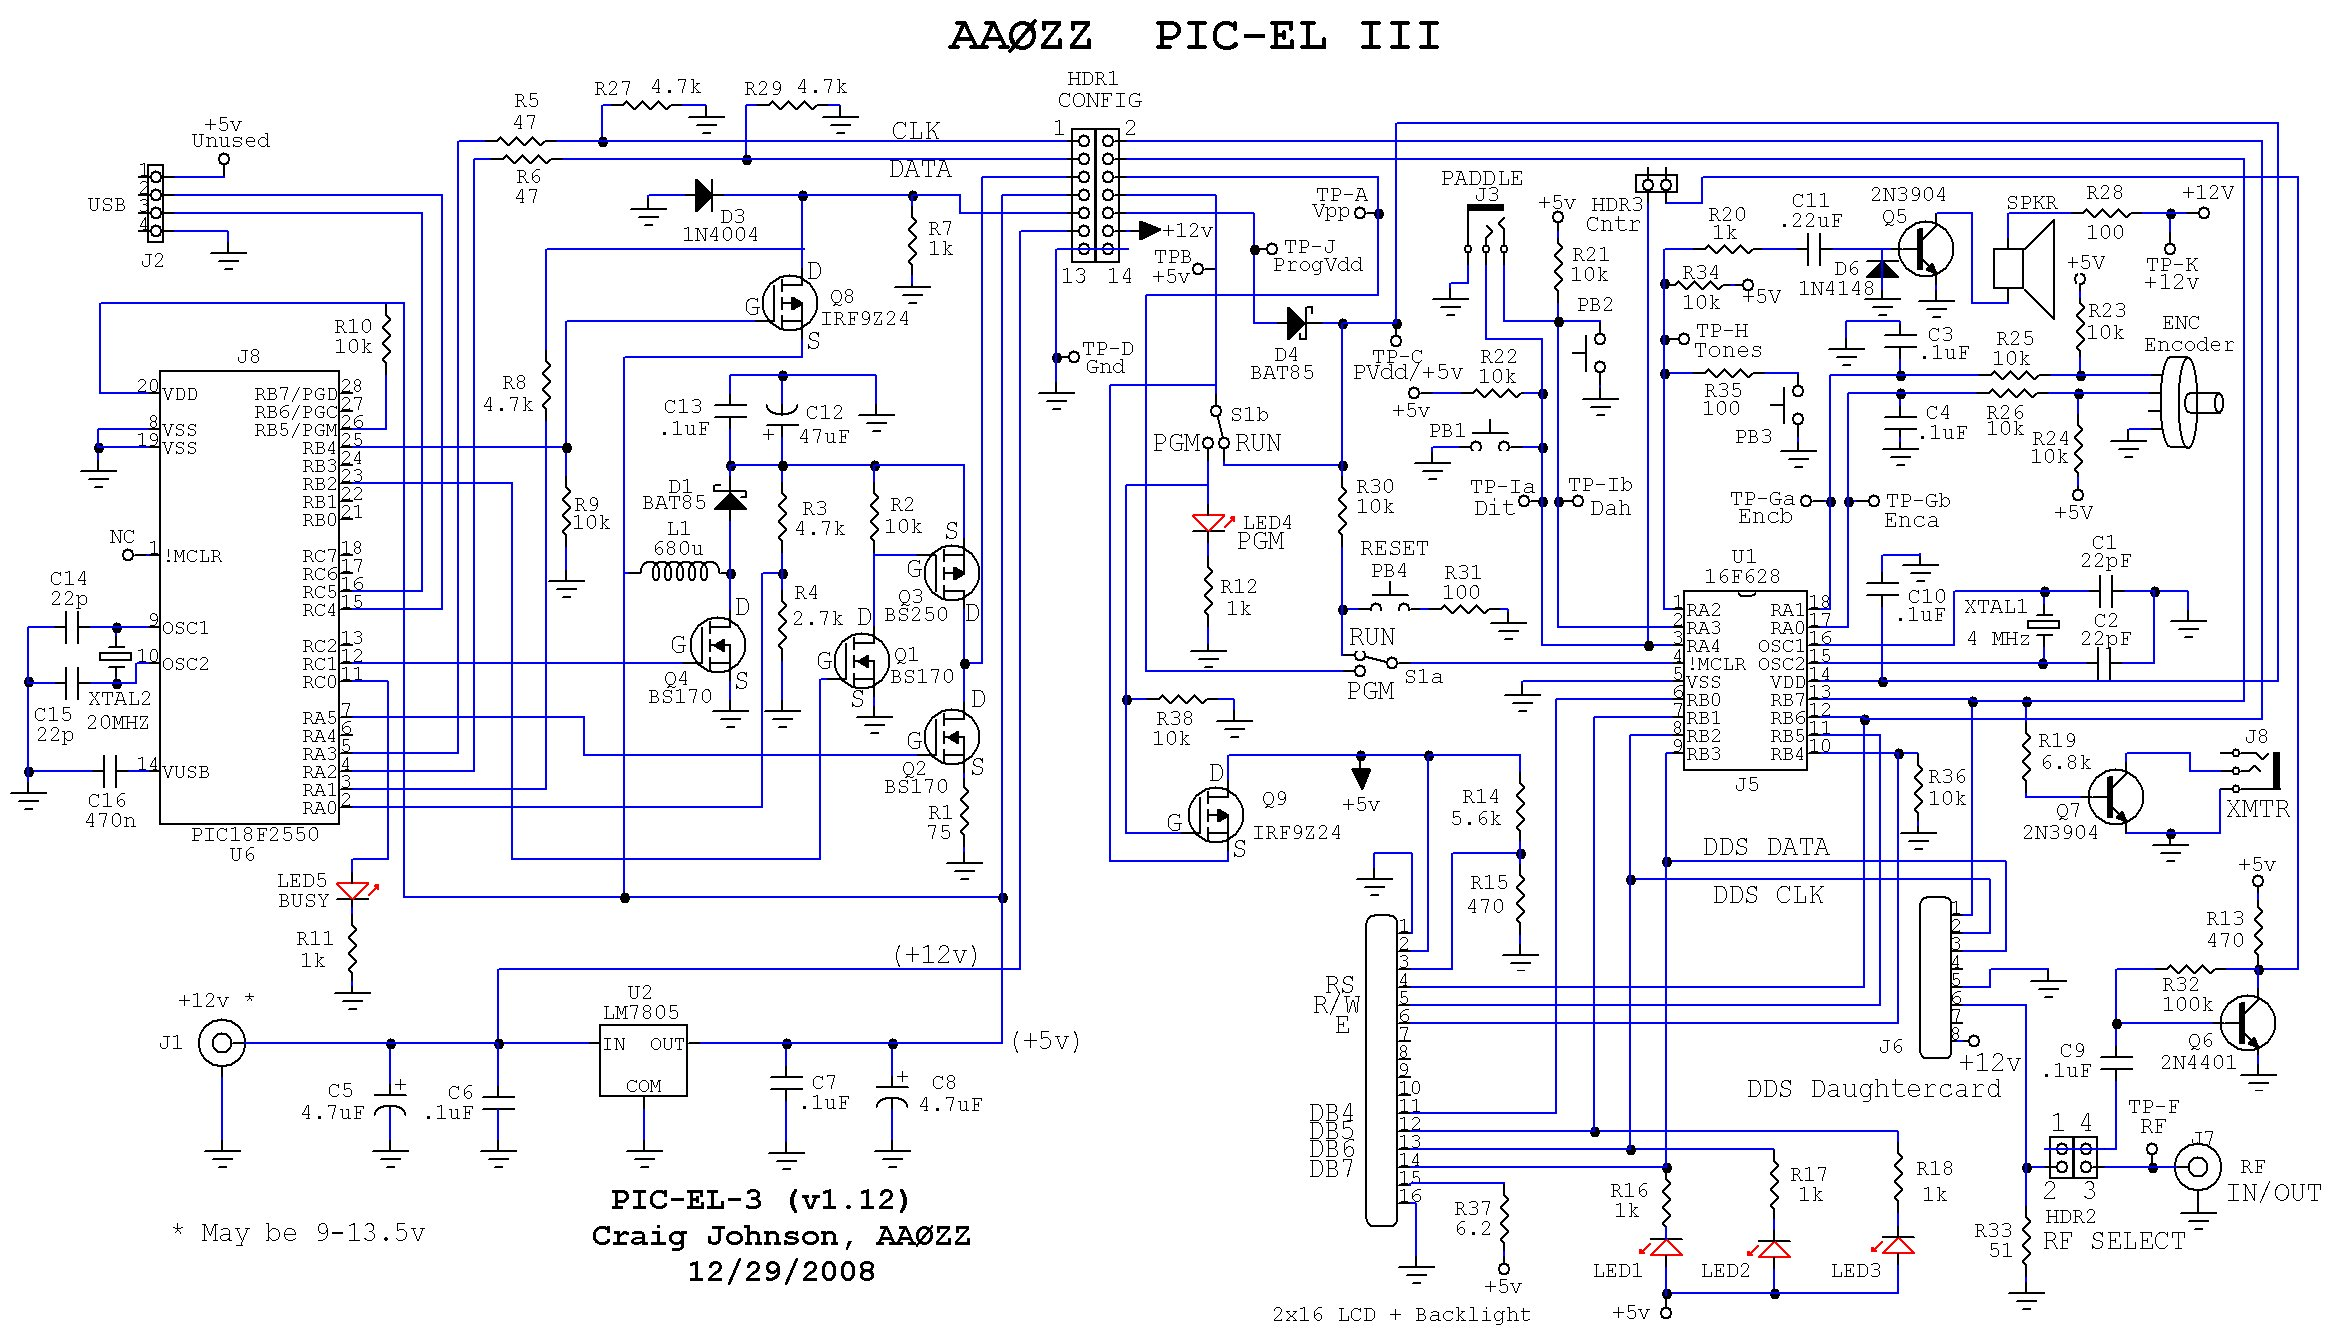 Car Video Sound System Auto Stereo In Dash Double Din Boss Audio Bv9384nv together with Why There Is A Resistor And A Capacitor In This Aux Cables Diagram additionally All p71 besides Index php furthermore Item 7881 Parrot 3200 LS COLOR CK3200LS. on stereo wiring diagram